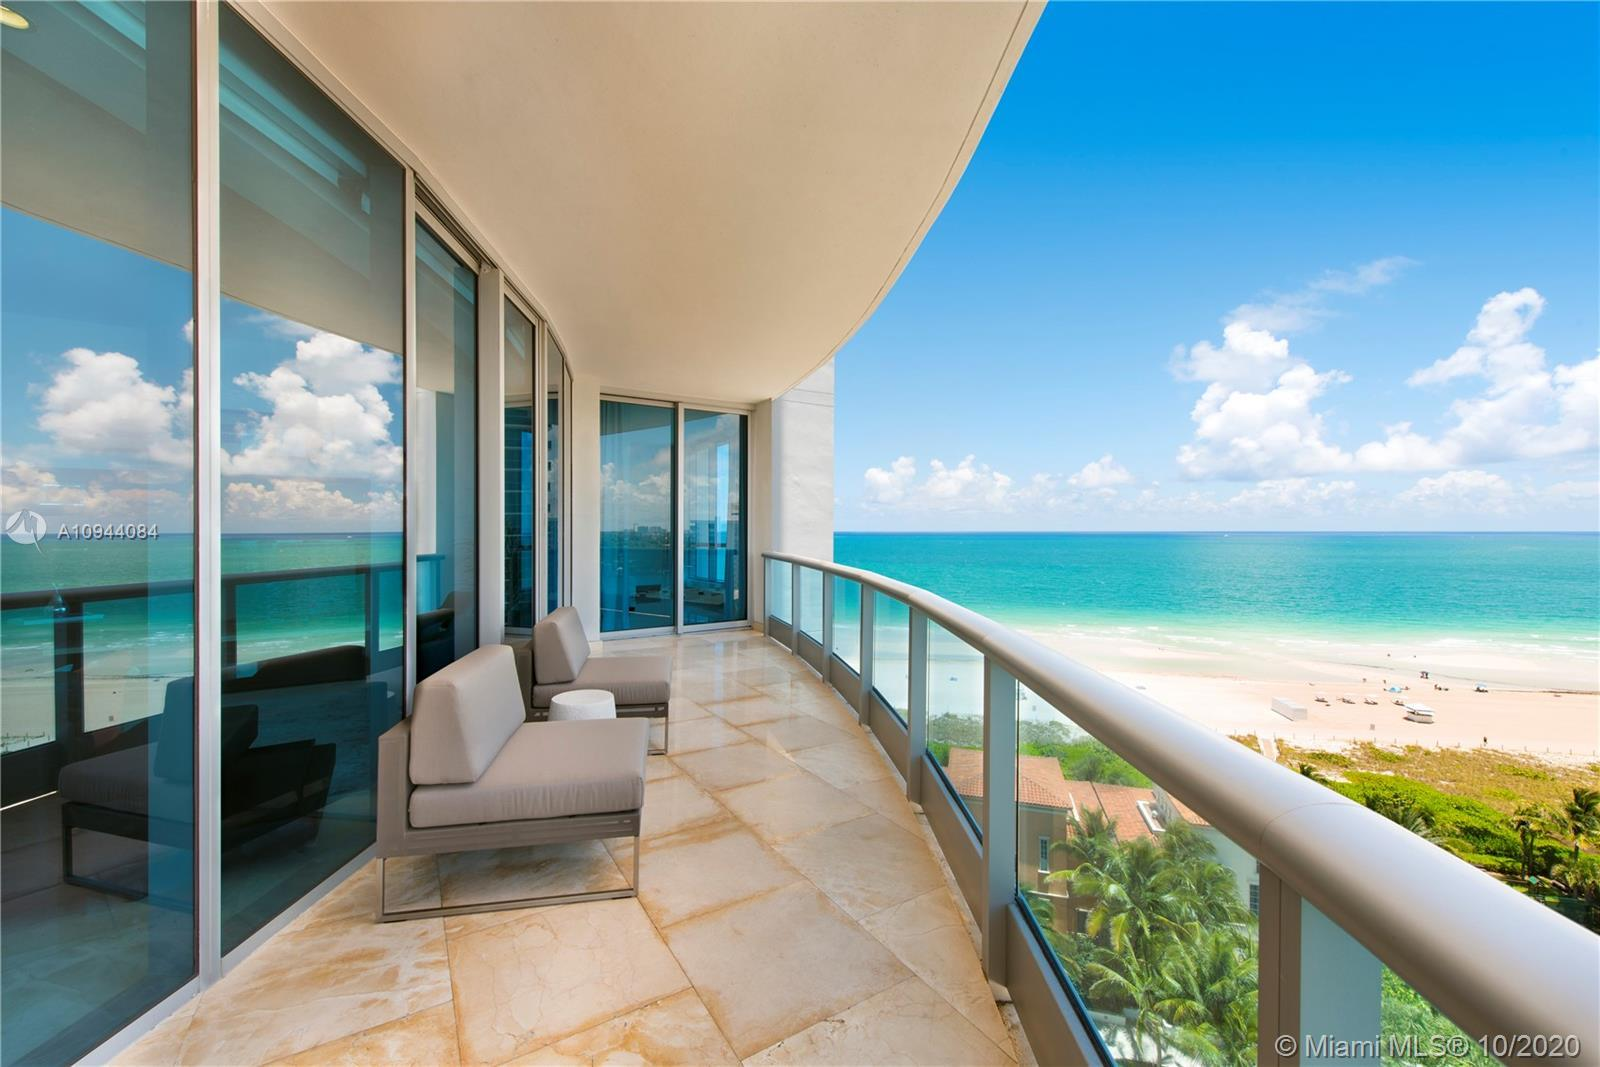 "SE corner 3/3/1 residence with 10"" ceiling, large sunny terrace, AMAZING DIRECT OCEAN VIEWS, and cit"